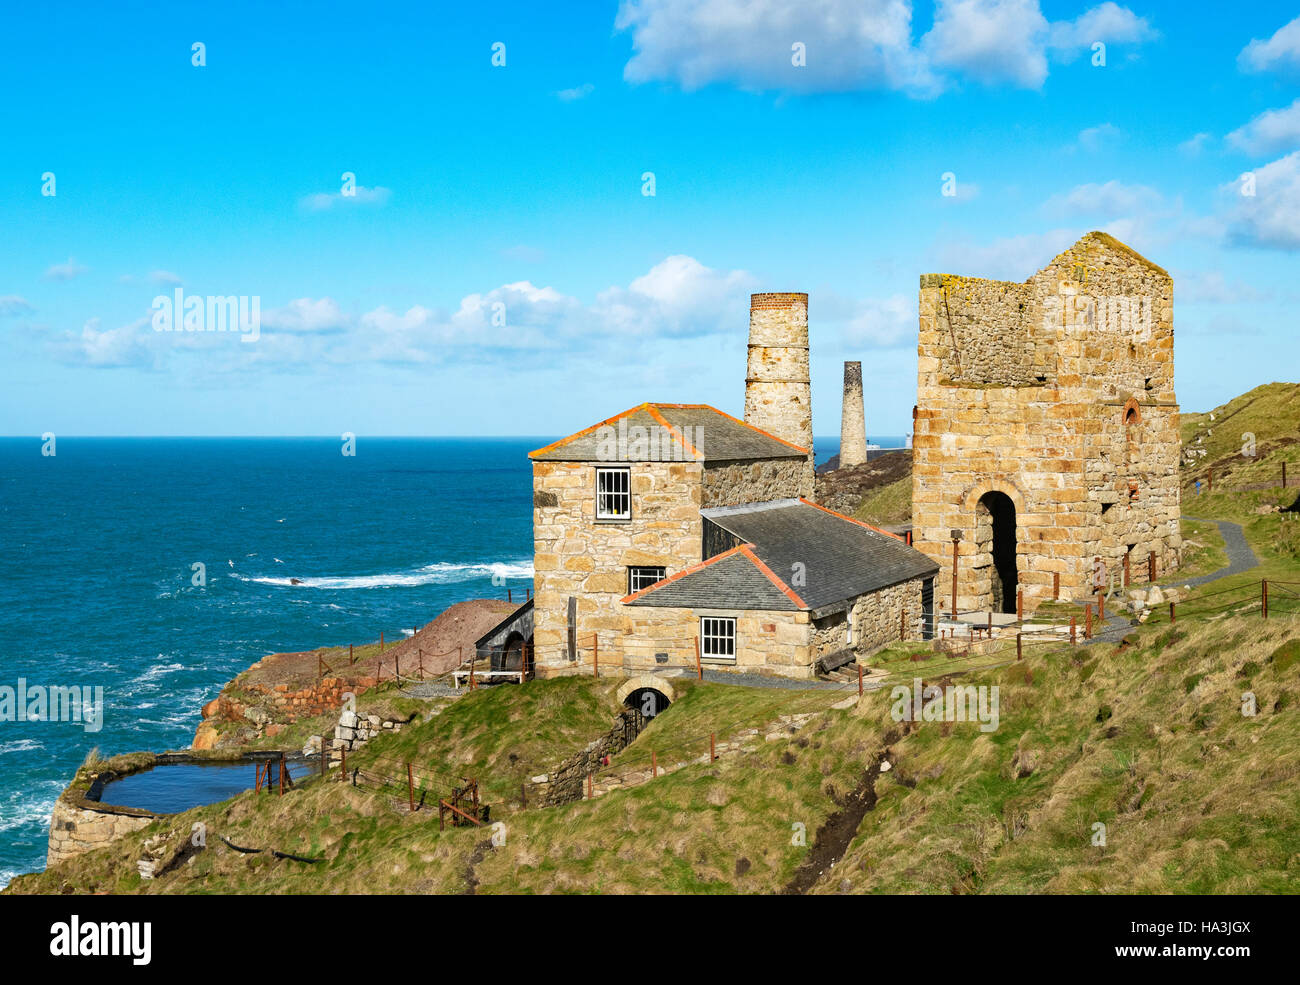 The restored Levant mine at Pendeen in Cornwall, England, UK - Stock Image